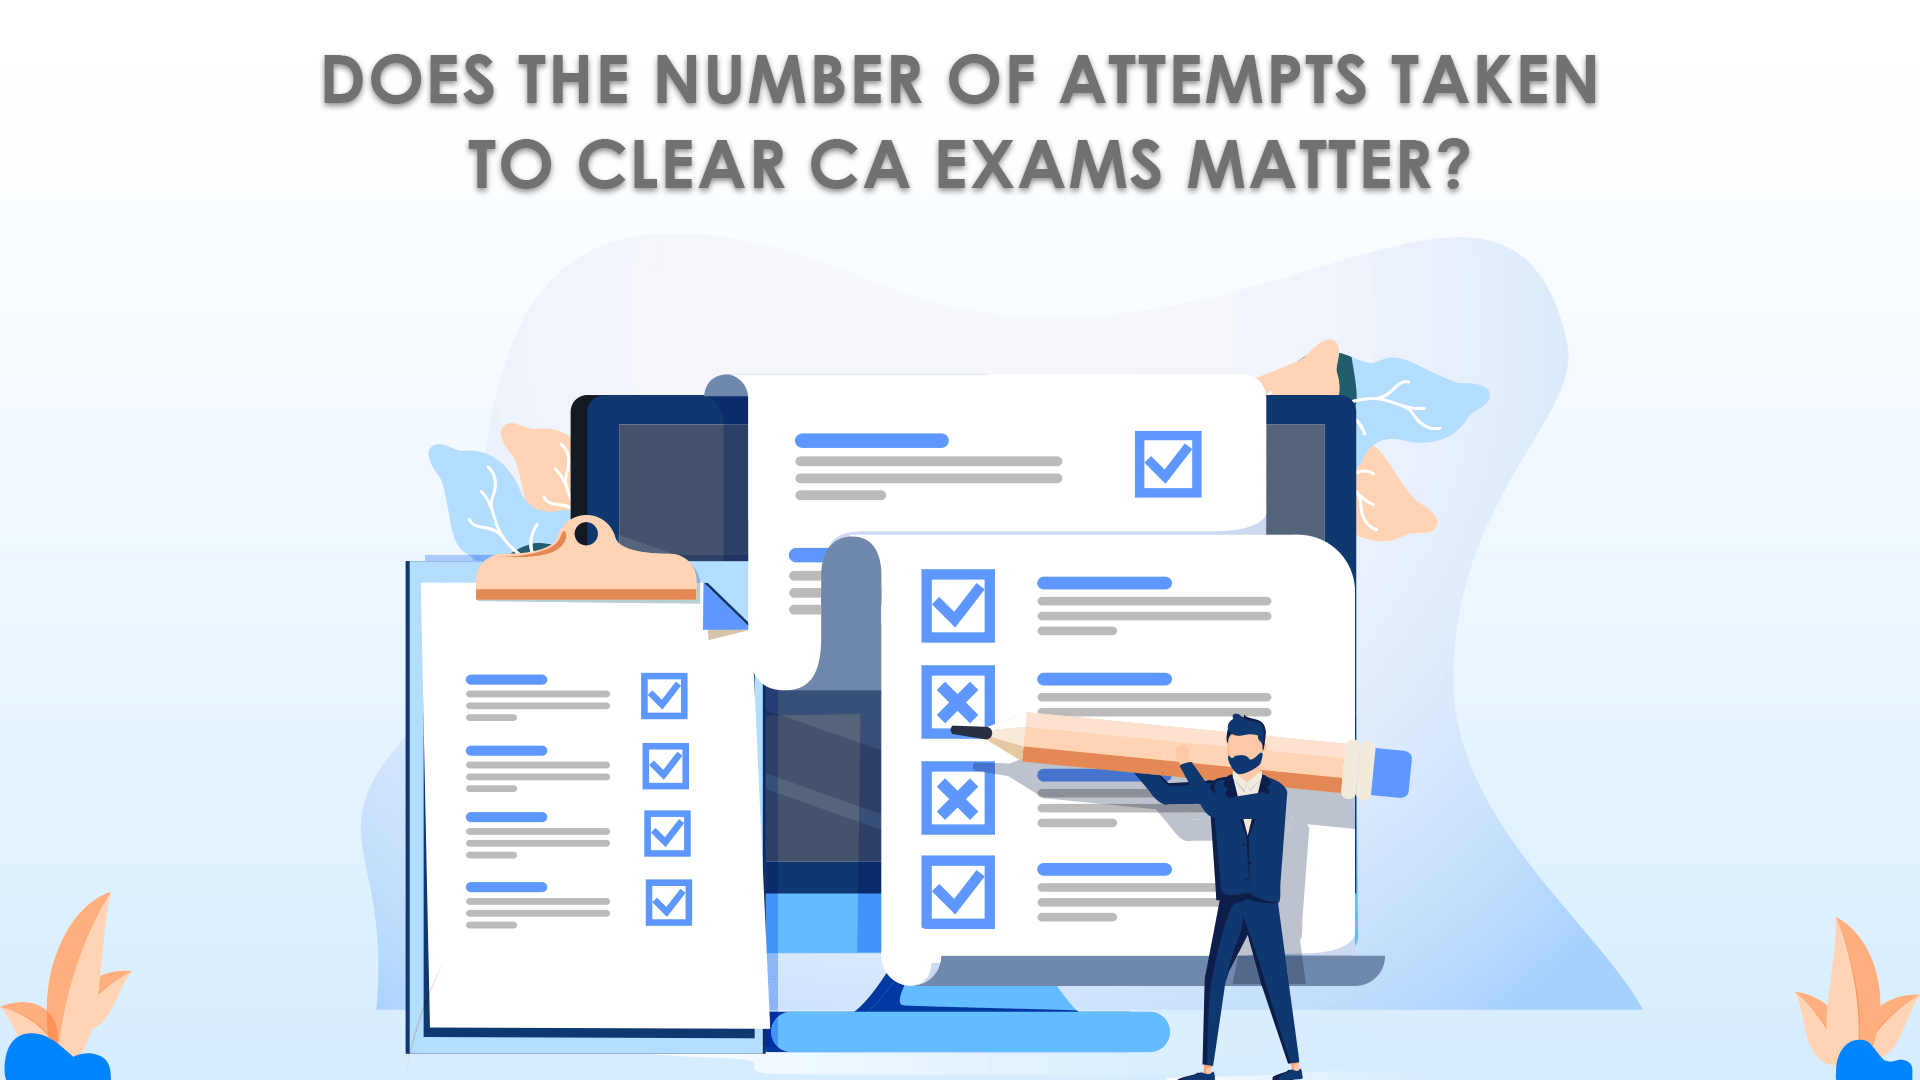 Does the Number of Attempts Taken in Clearing the CA Exams Matter?